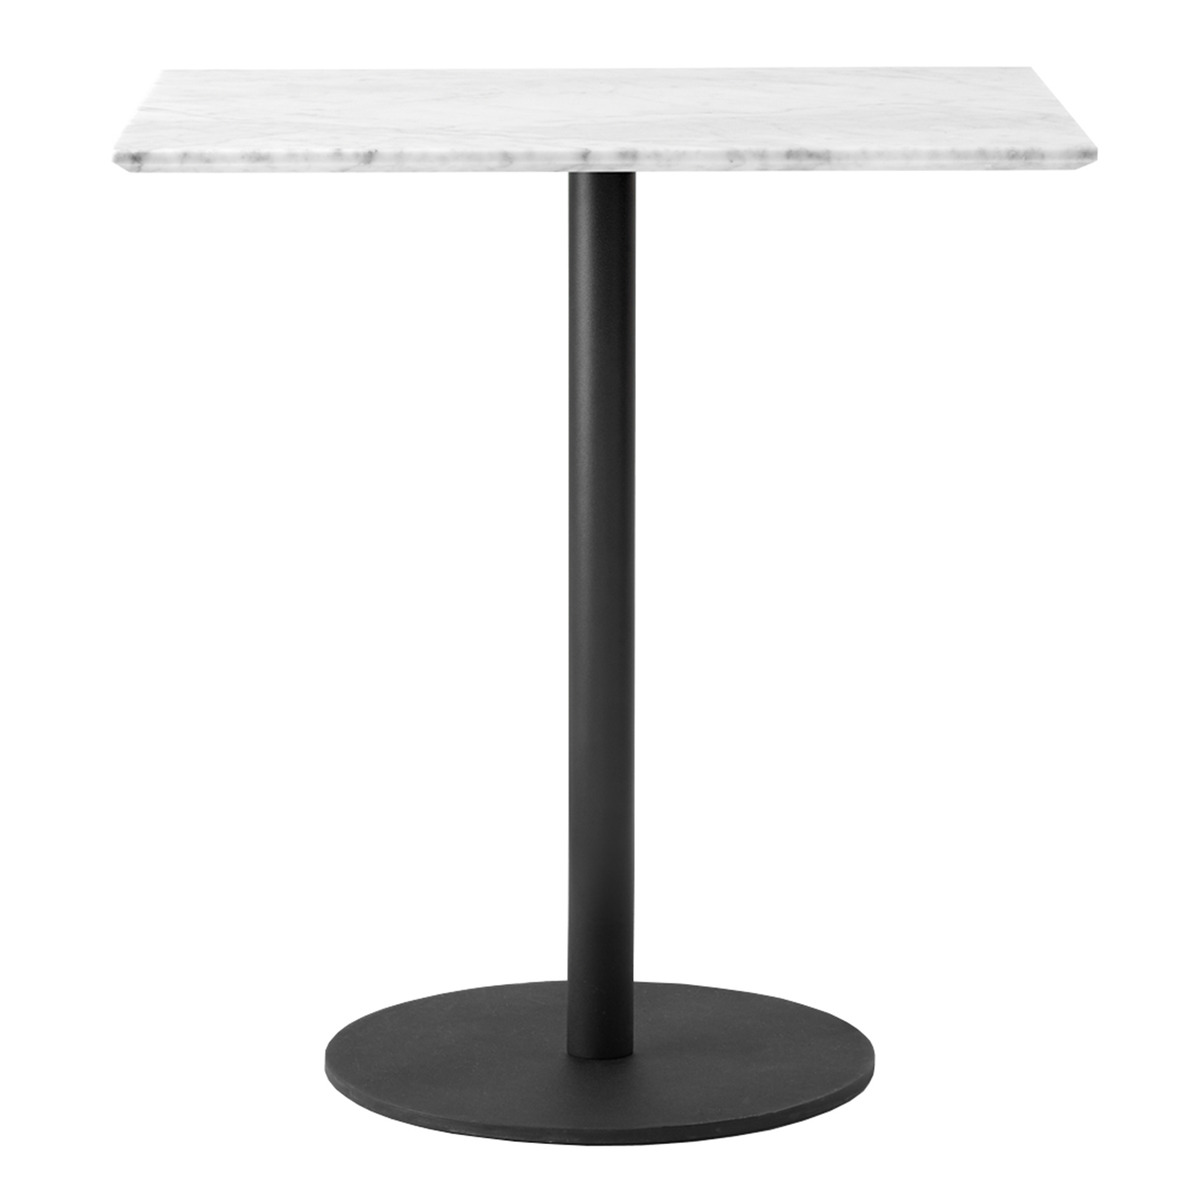 &Tradition In Between SK16 table, black - white marble from &Tradition